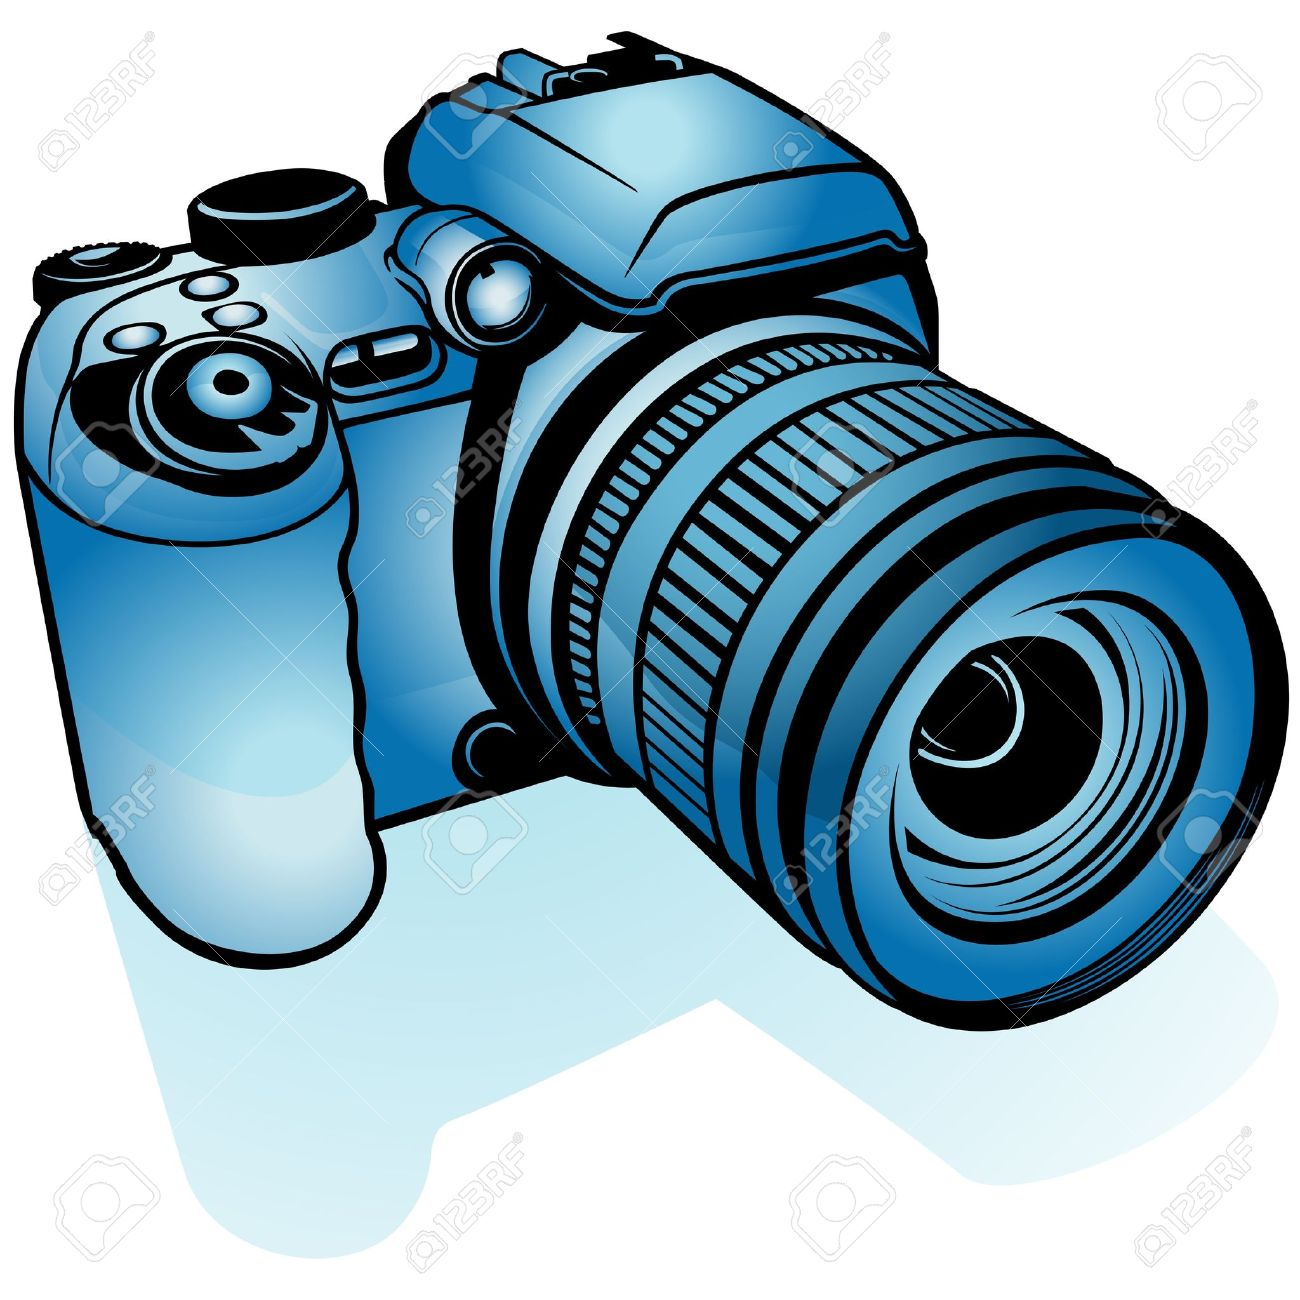 Slr camera clipart png library stock Slr Camera Cliparts   Free download best Slr Camera Cliparts ... png library stock